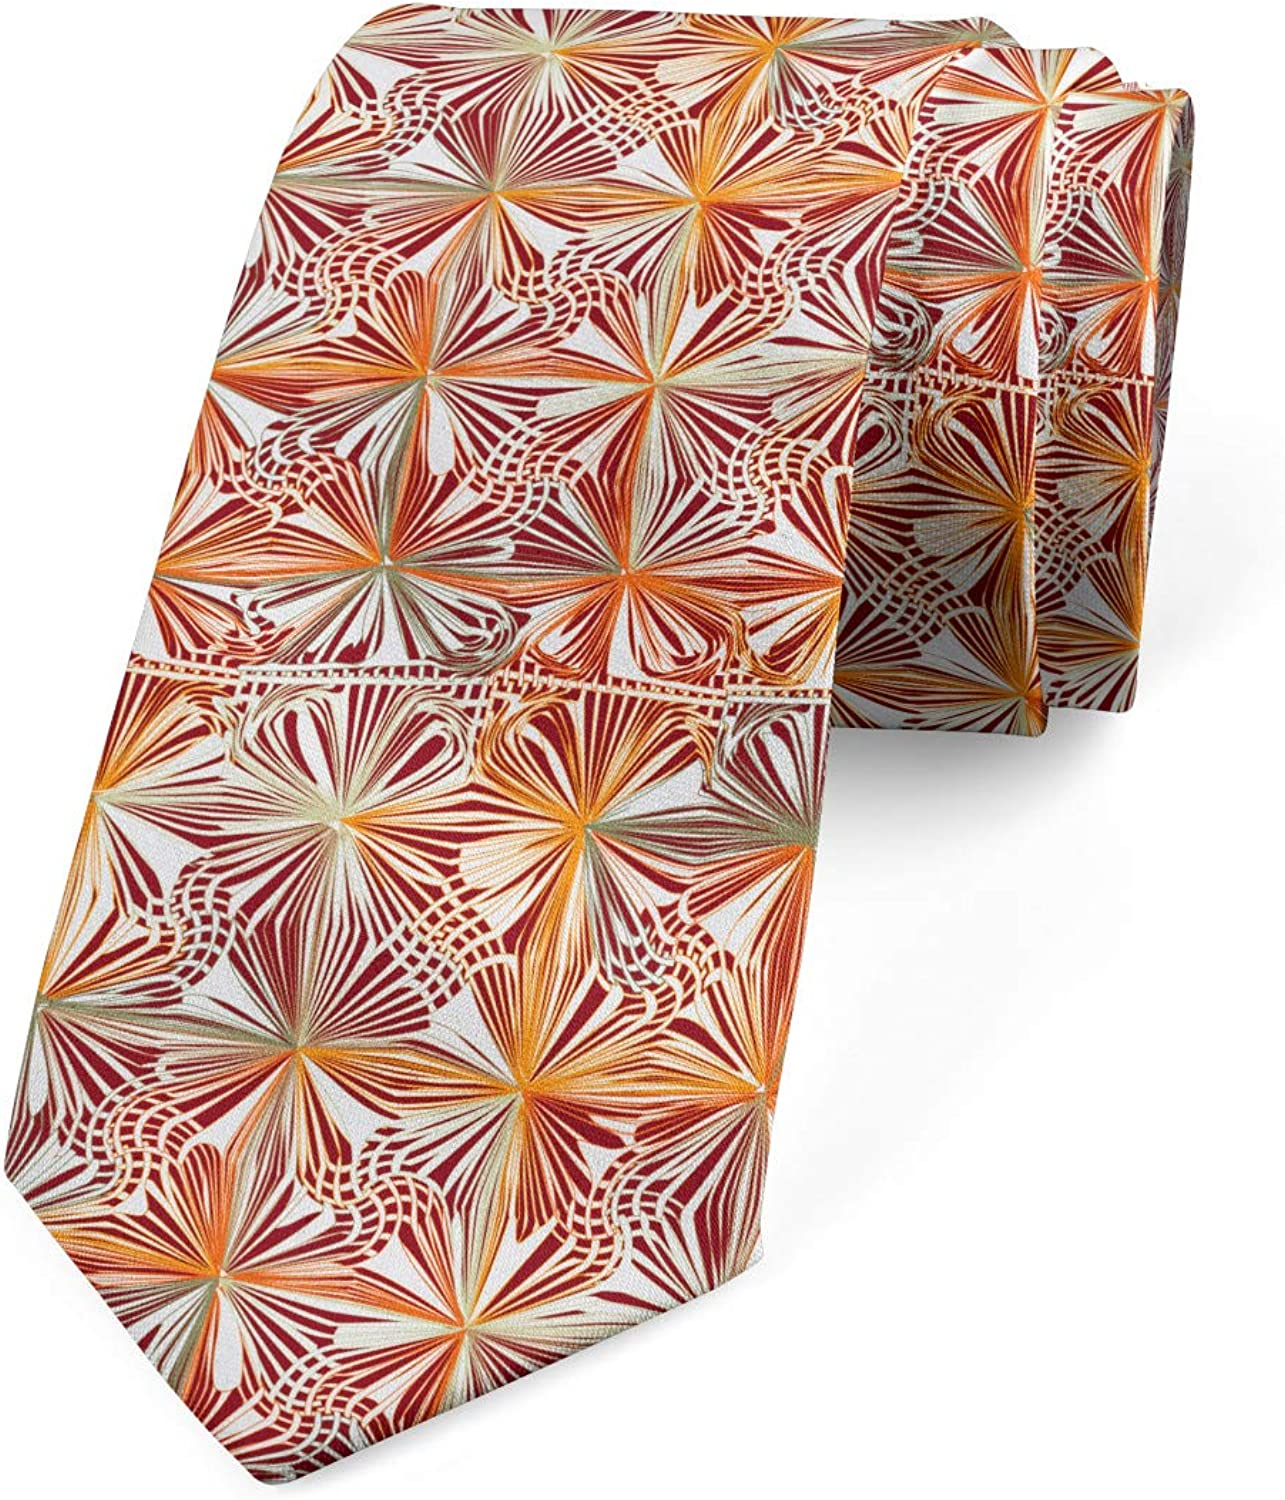 Ambesonne Spring Necktie, Traditional Bohemian Style Flower Pattern and Swirly Leaves Petals, 3.7